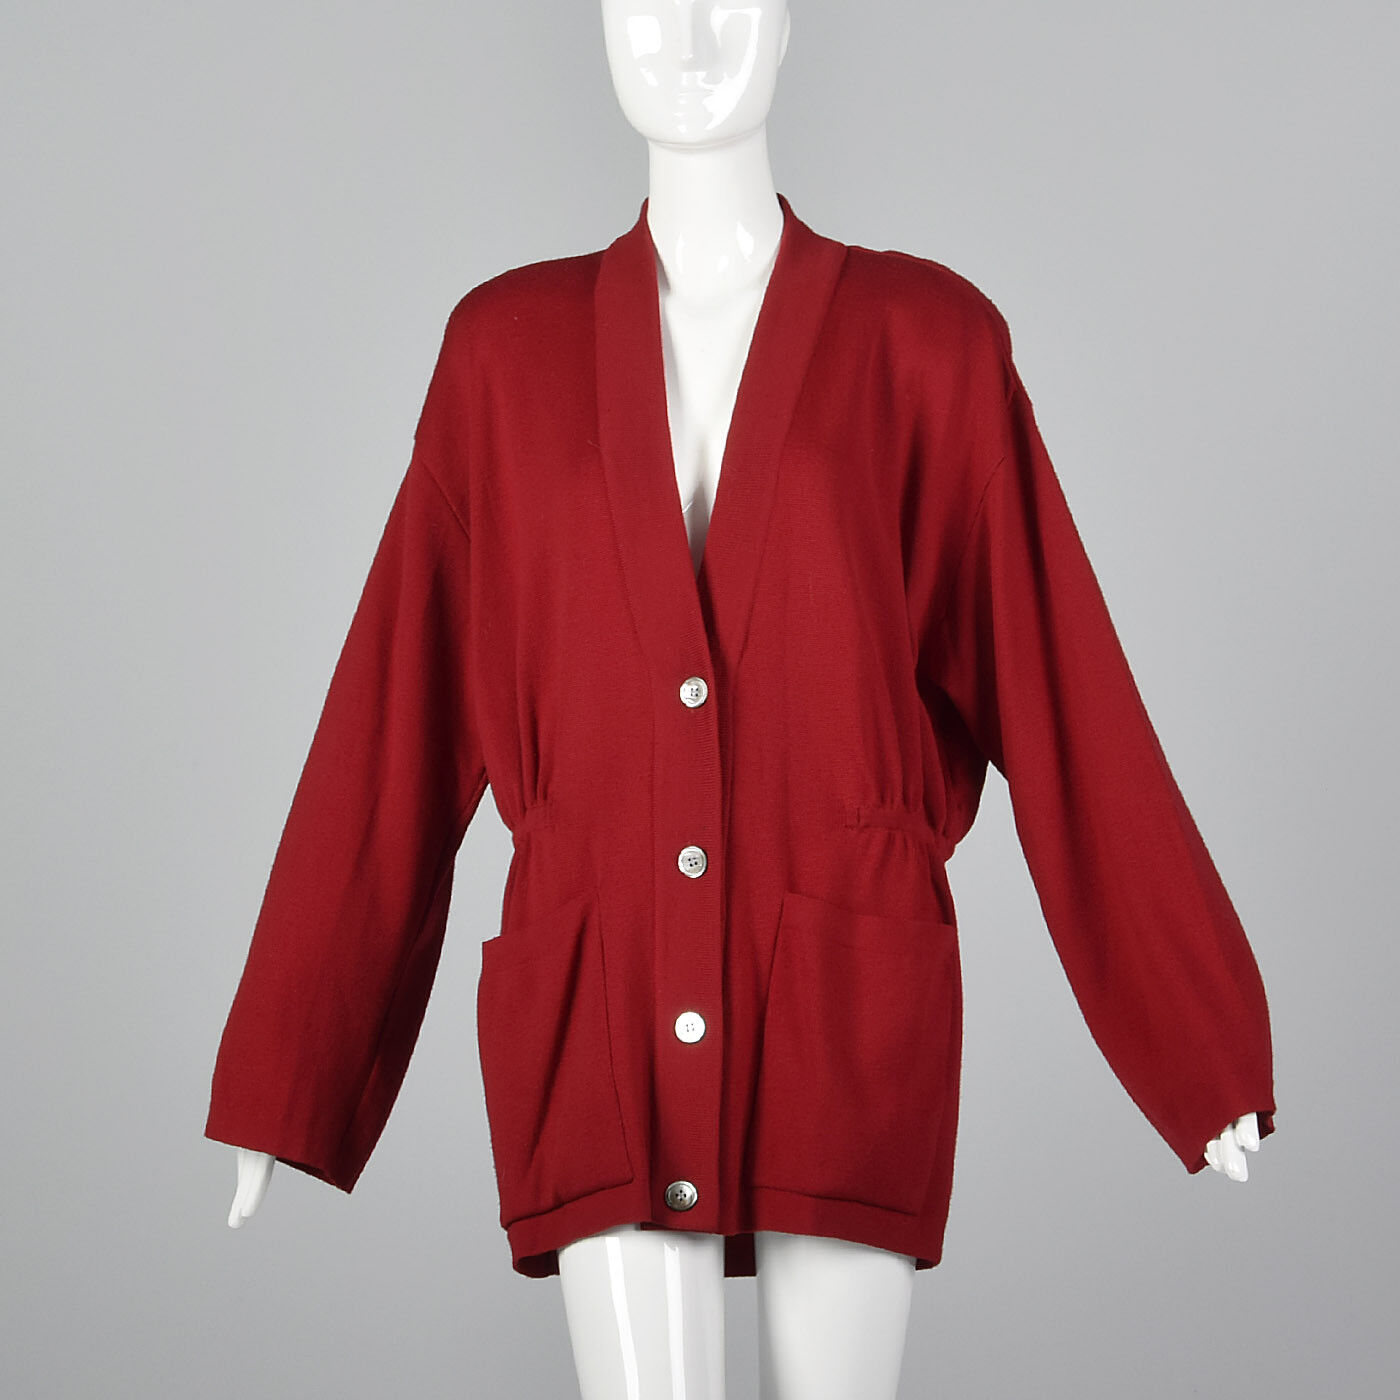 89afdd82ba044 Oversized 1980s L Red Sleeve VTG 80s Separates Wool Long Cardigan ...